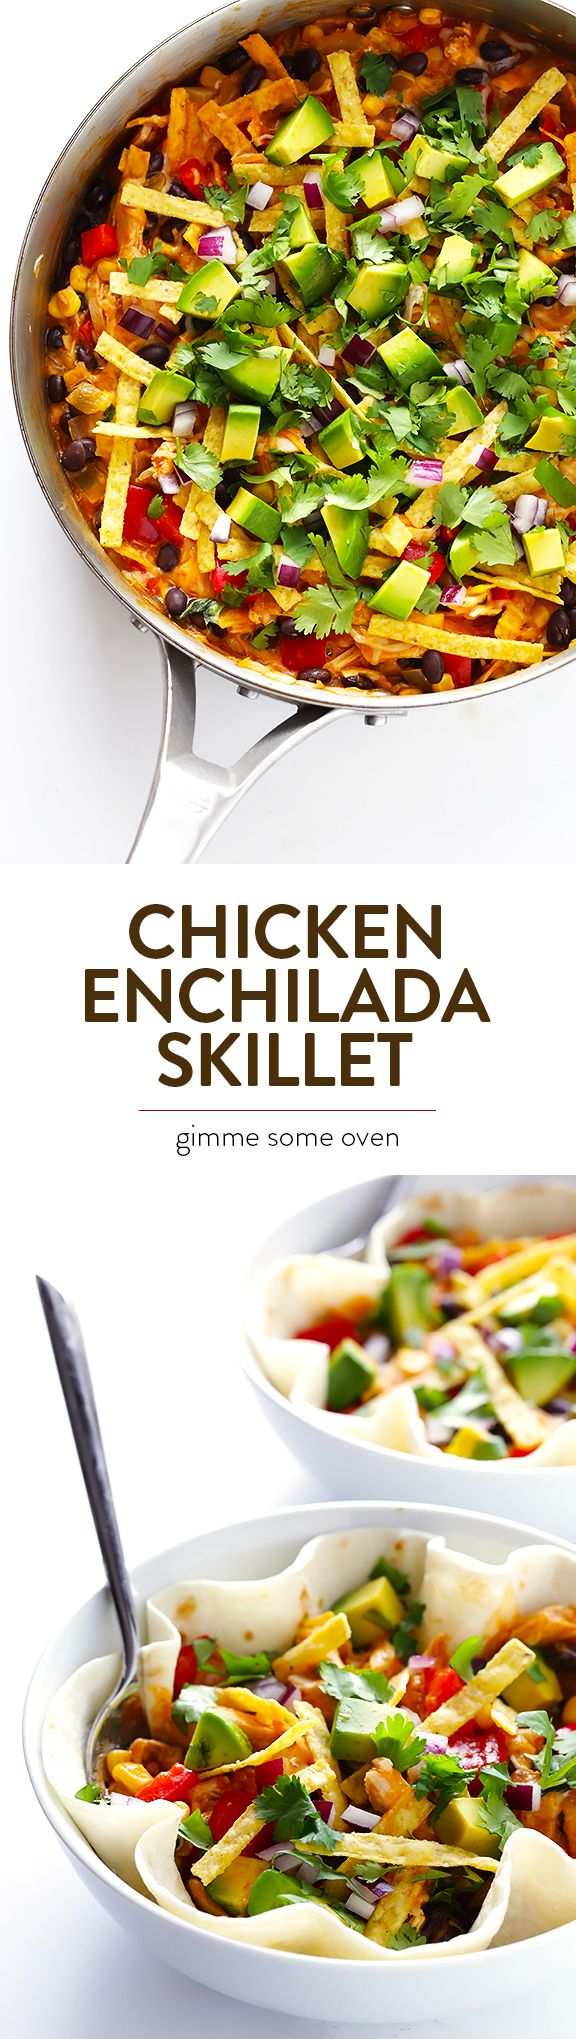 Everything you love about chicken enchiladas...made extra easy in 20 minutes in a skillet! | gimmesomeoven.com